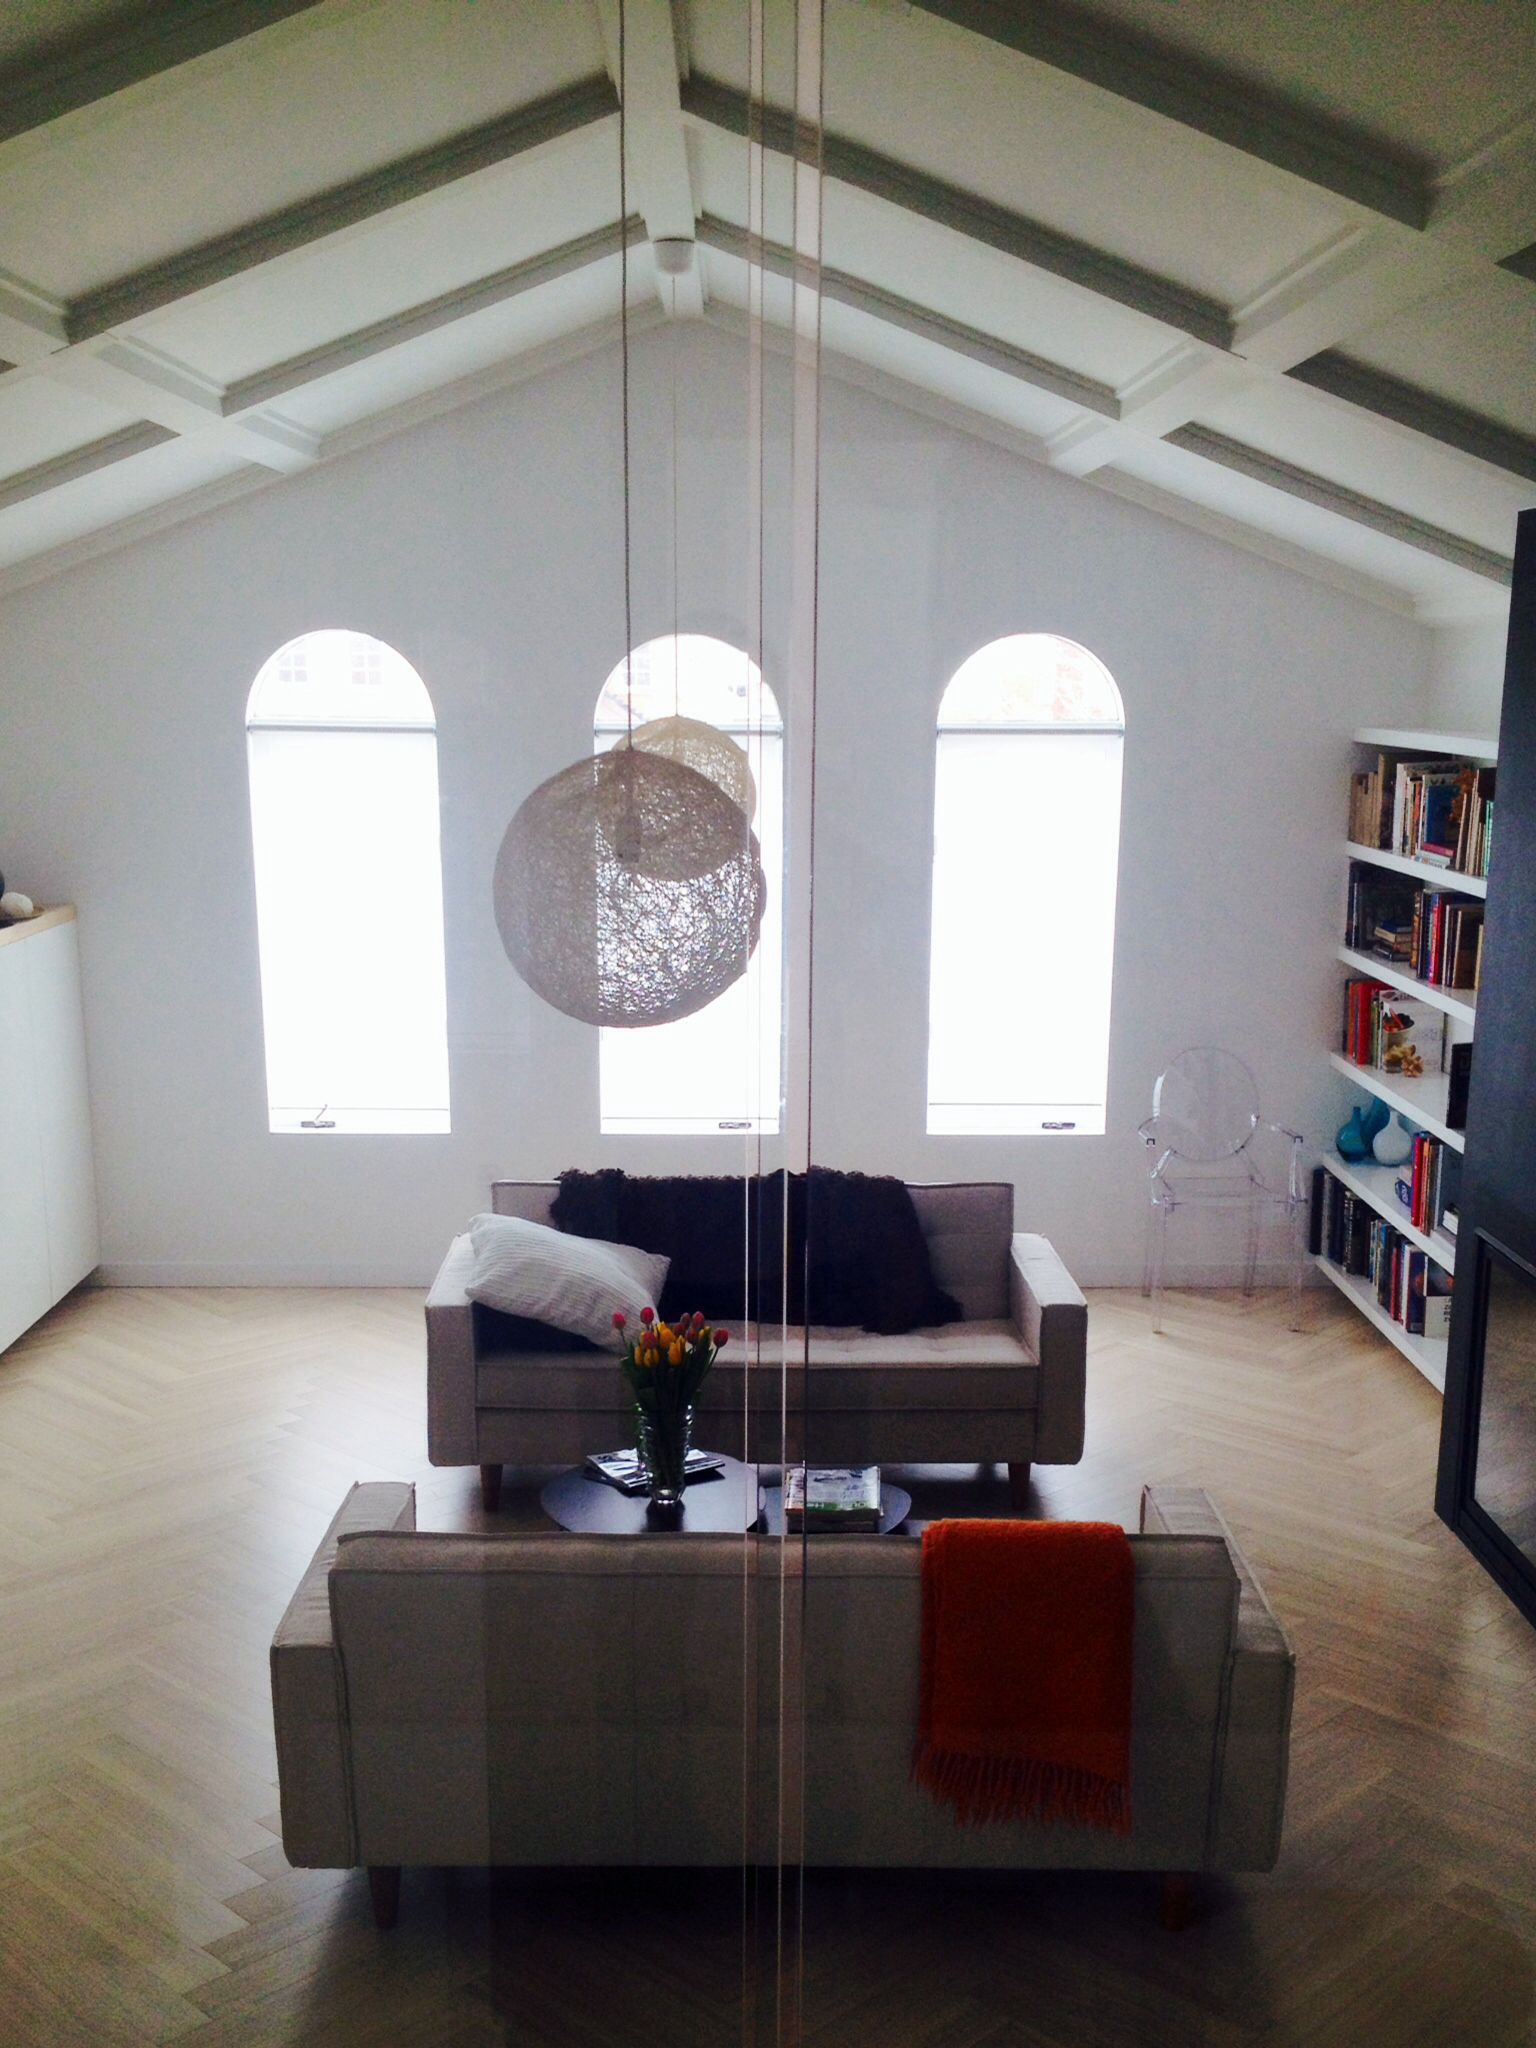 Family Room Vaulted Ceiling Is Amazing, No More Popcorn The